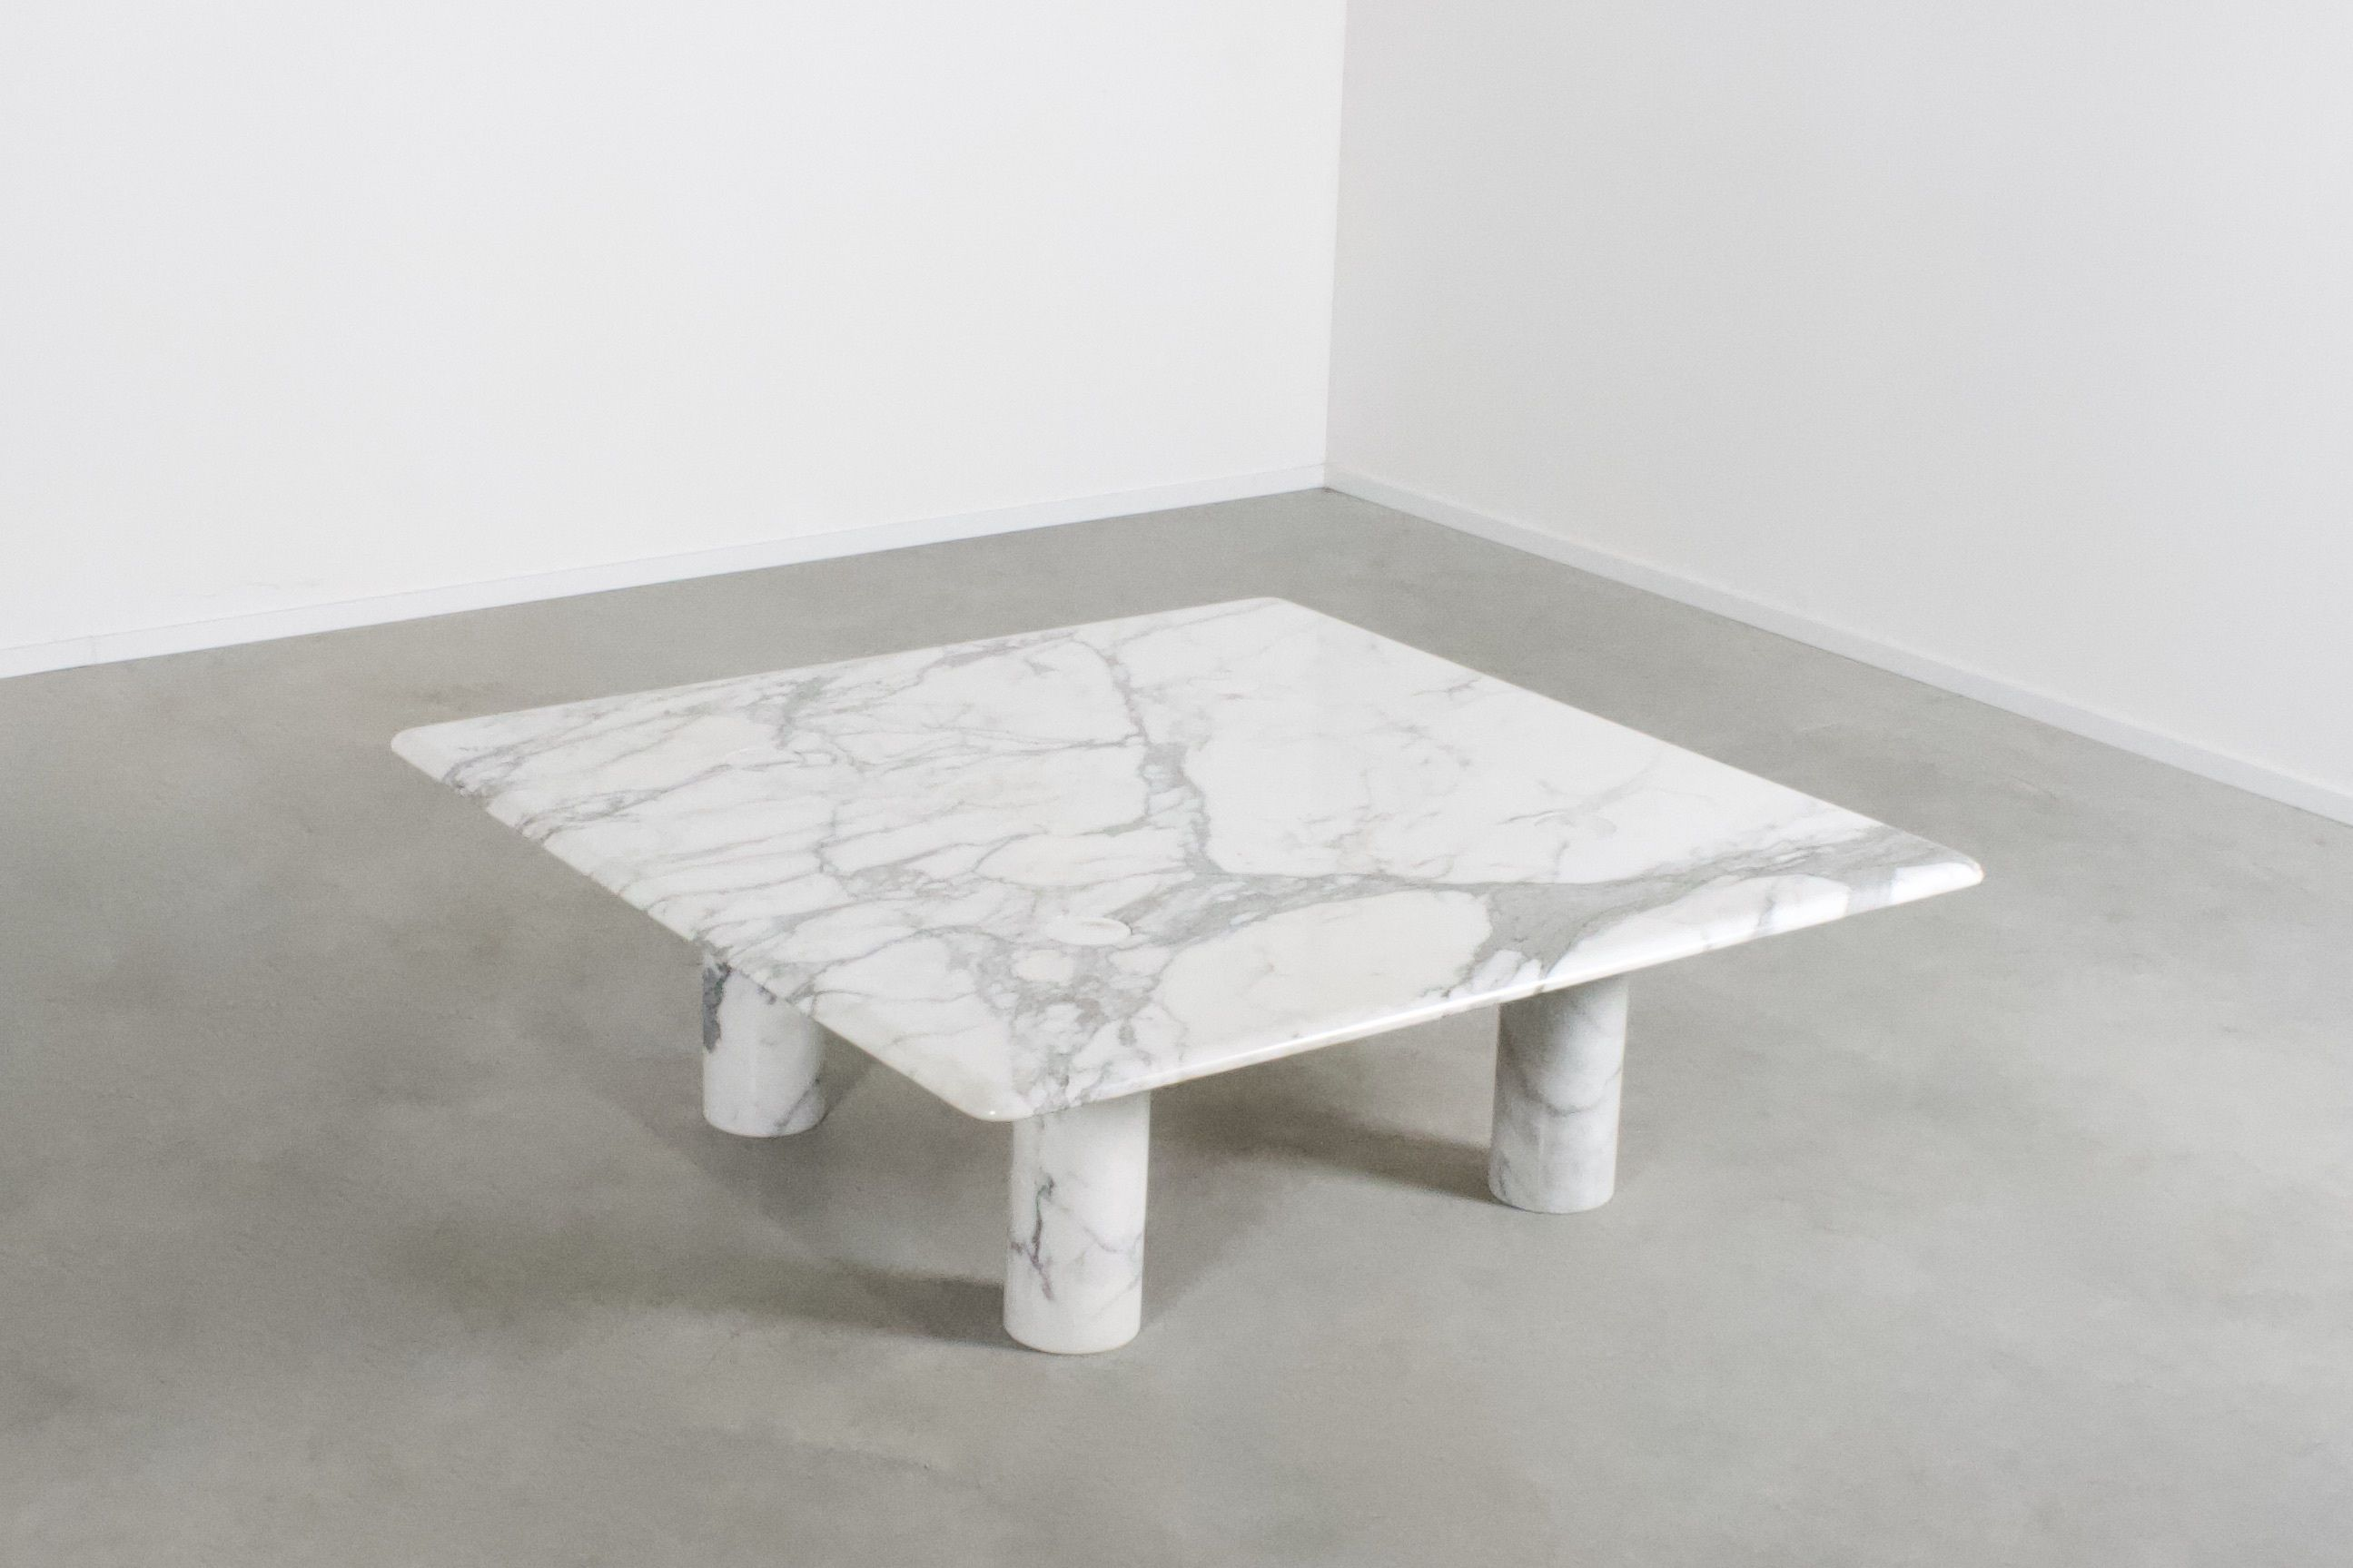 Large Angelo Mangiarotti Carrara Marble Coffee Table For Up Up Italy 1970s In 2020 Coffee Table Marble Coffee Table Coffee Tables For Sale